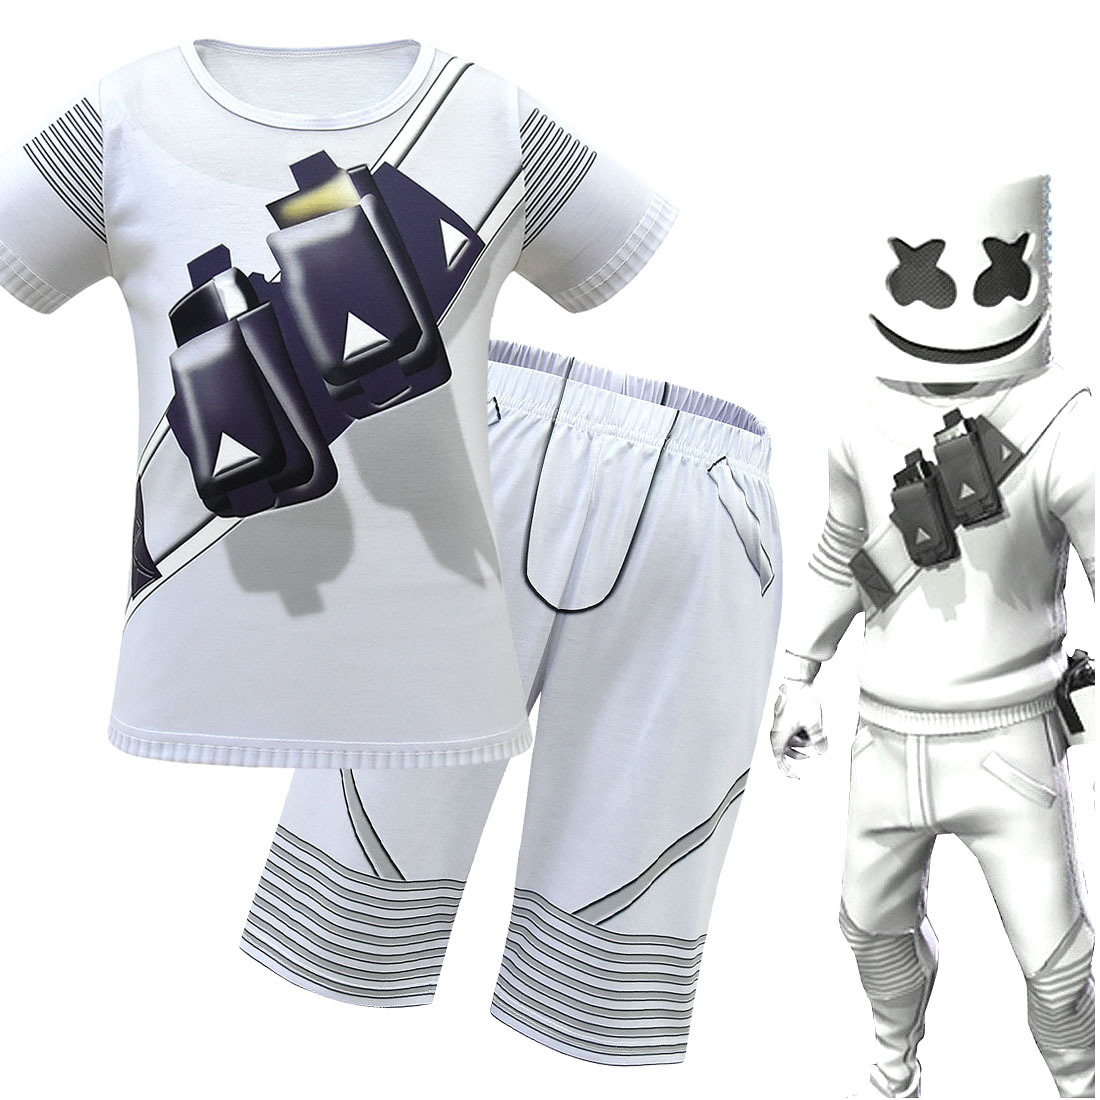 Summer fortress night DJ electric voice cotton candy clothes marshmello rock sports ball suit childrens suit